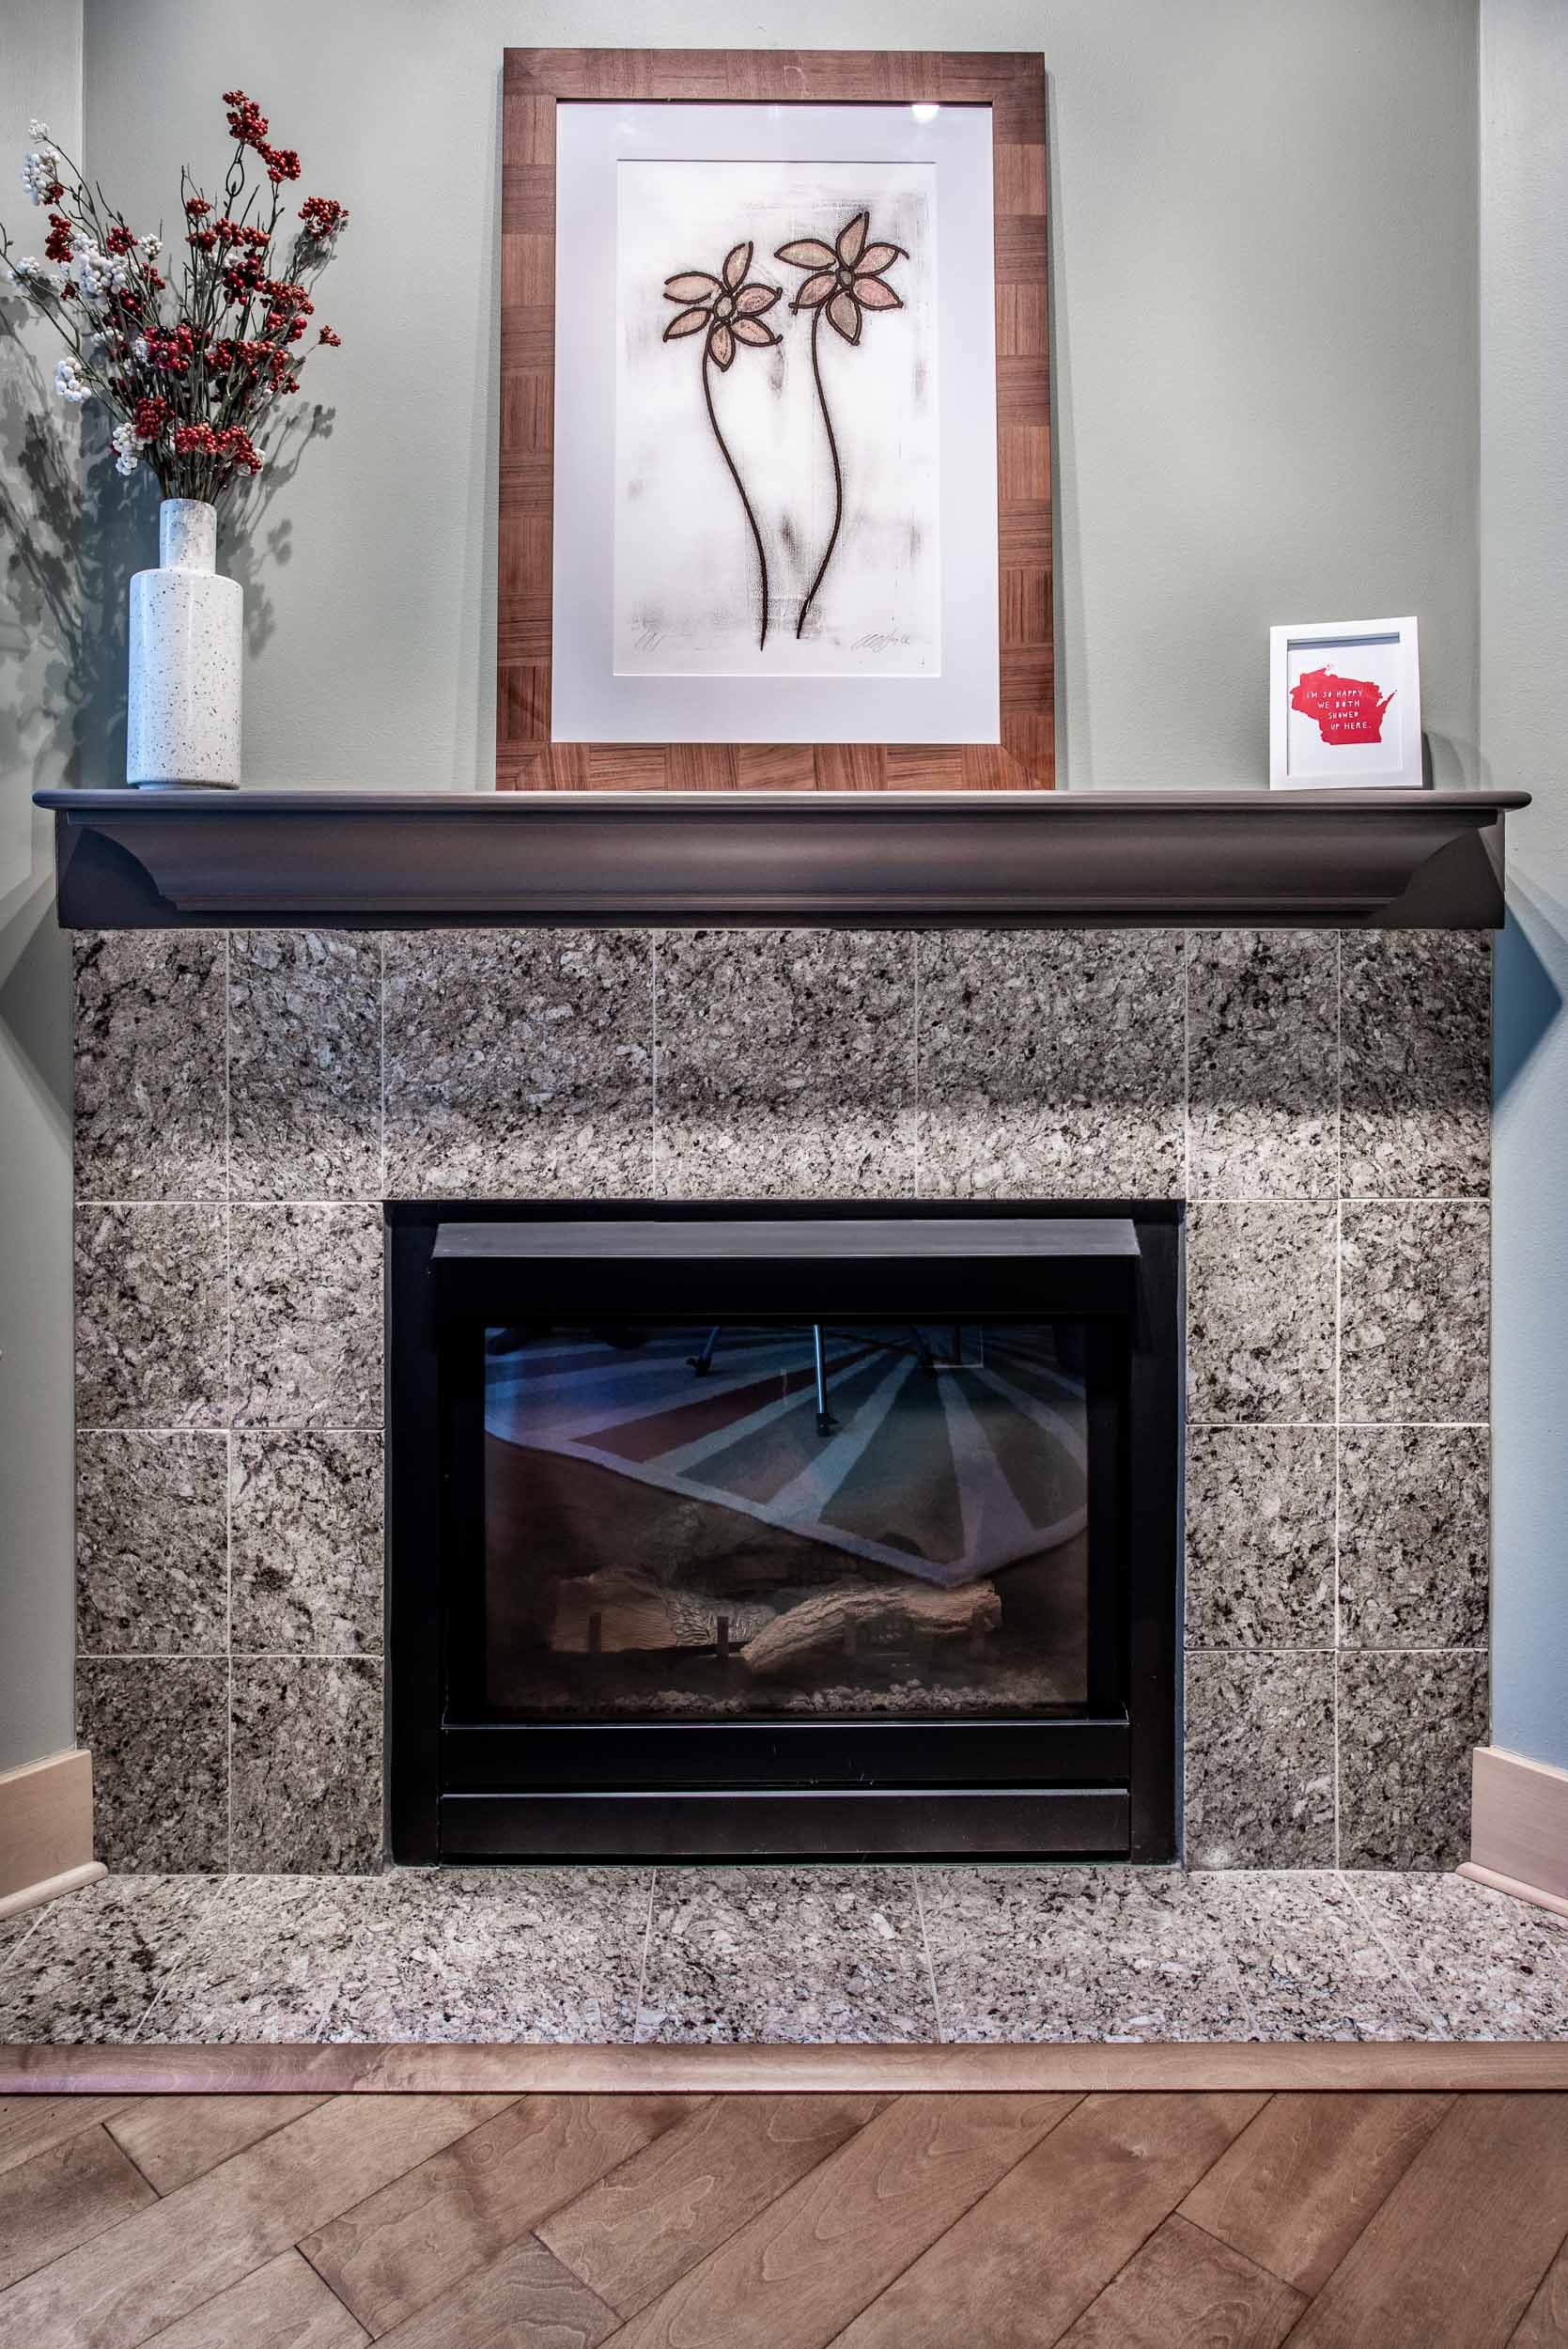 This condominium has a gas fireplace. Updated paint colors create a new feel.